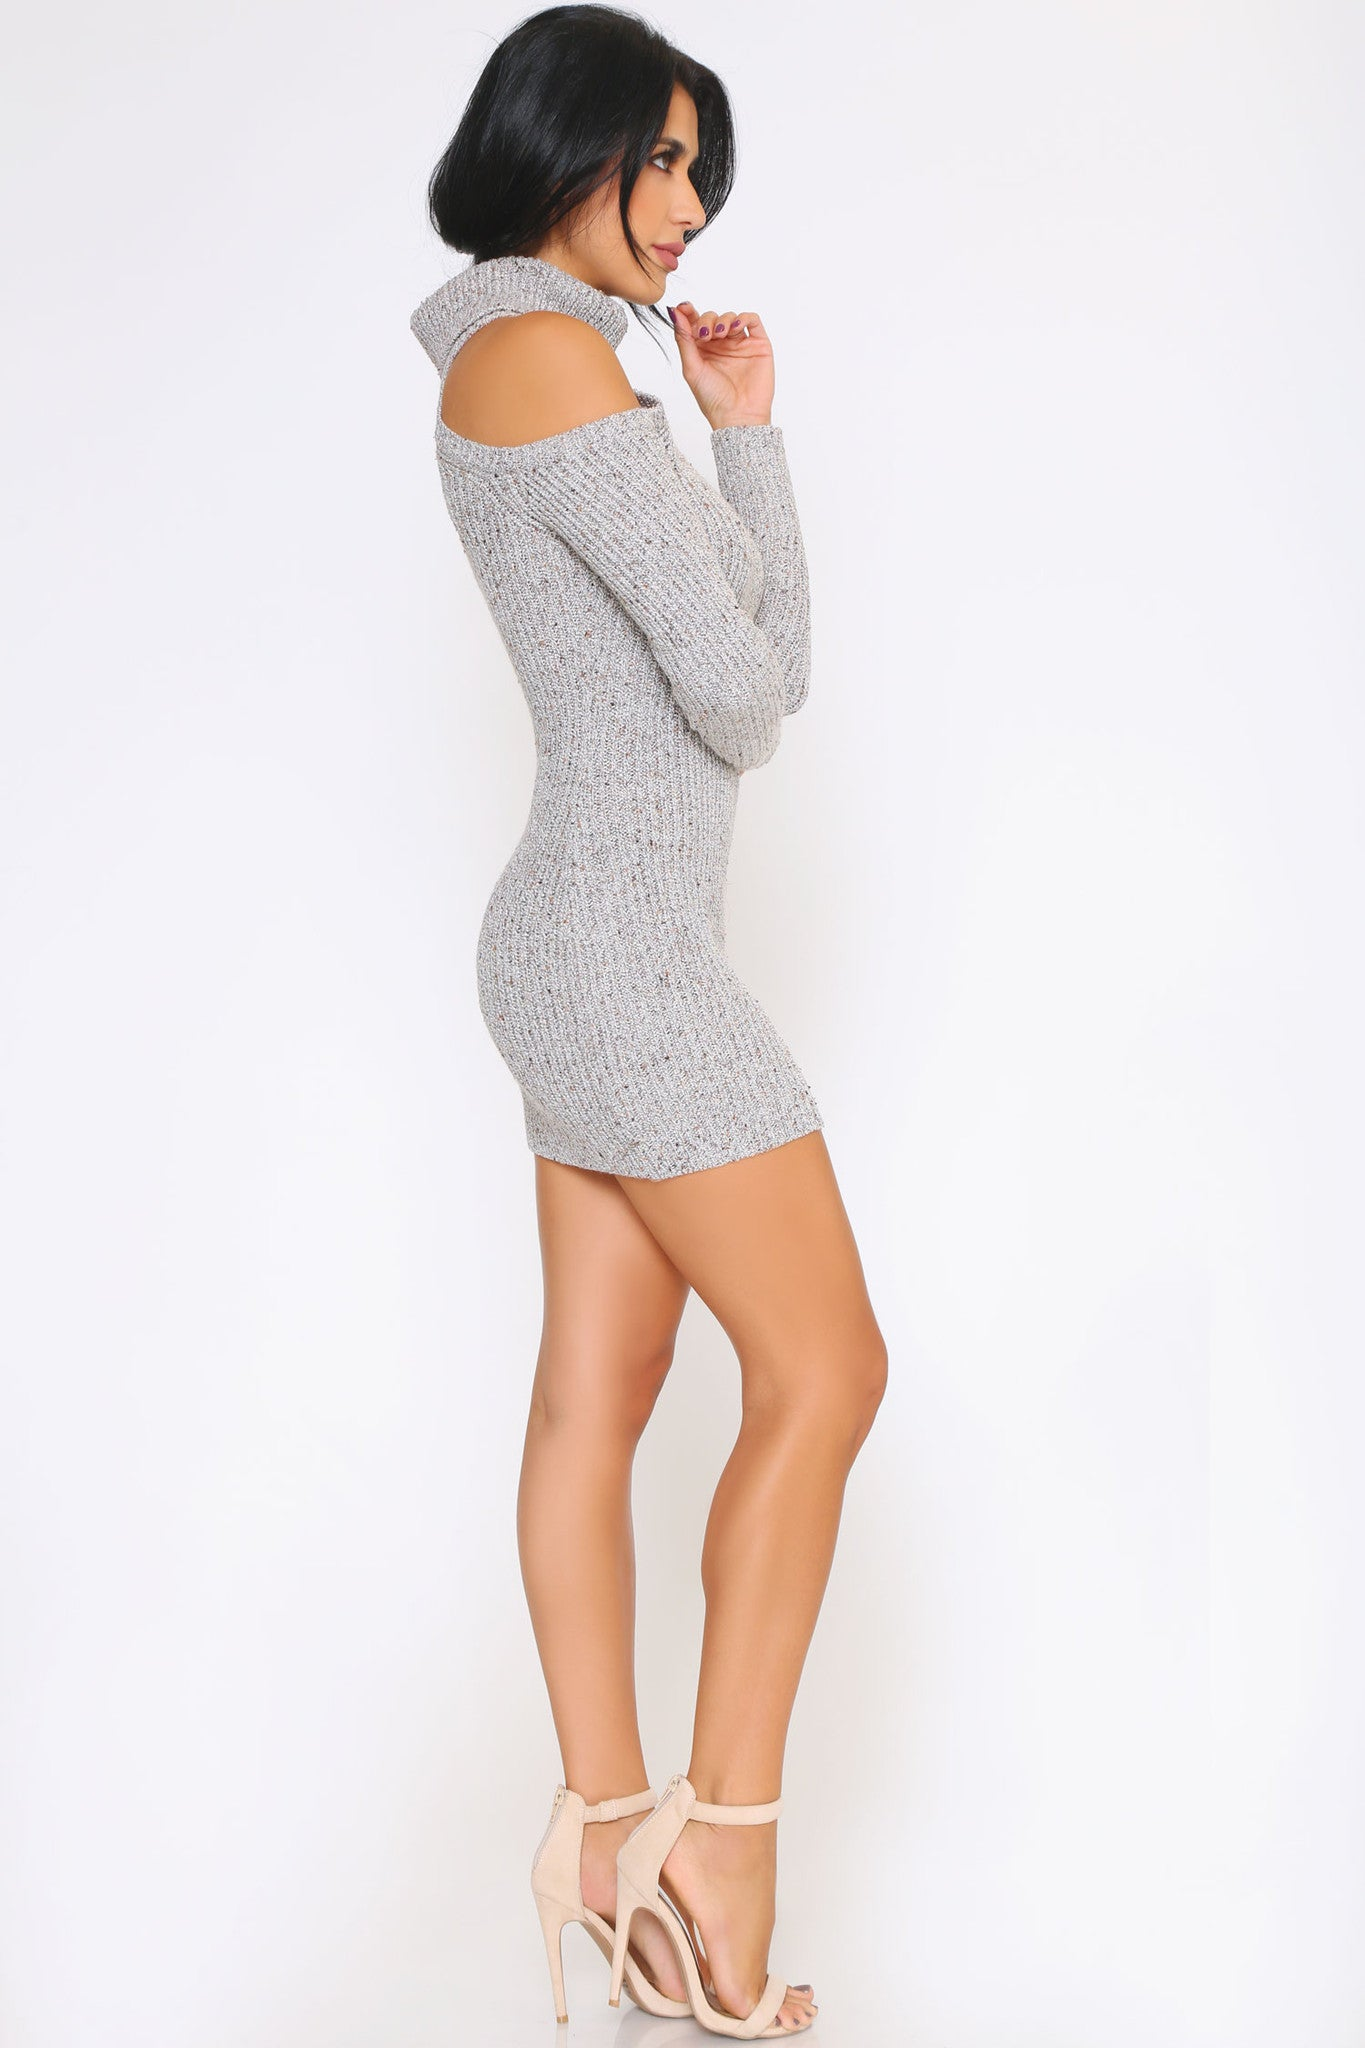 HAZEL SWEATER DRESS - Glam Envy - 2